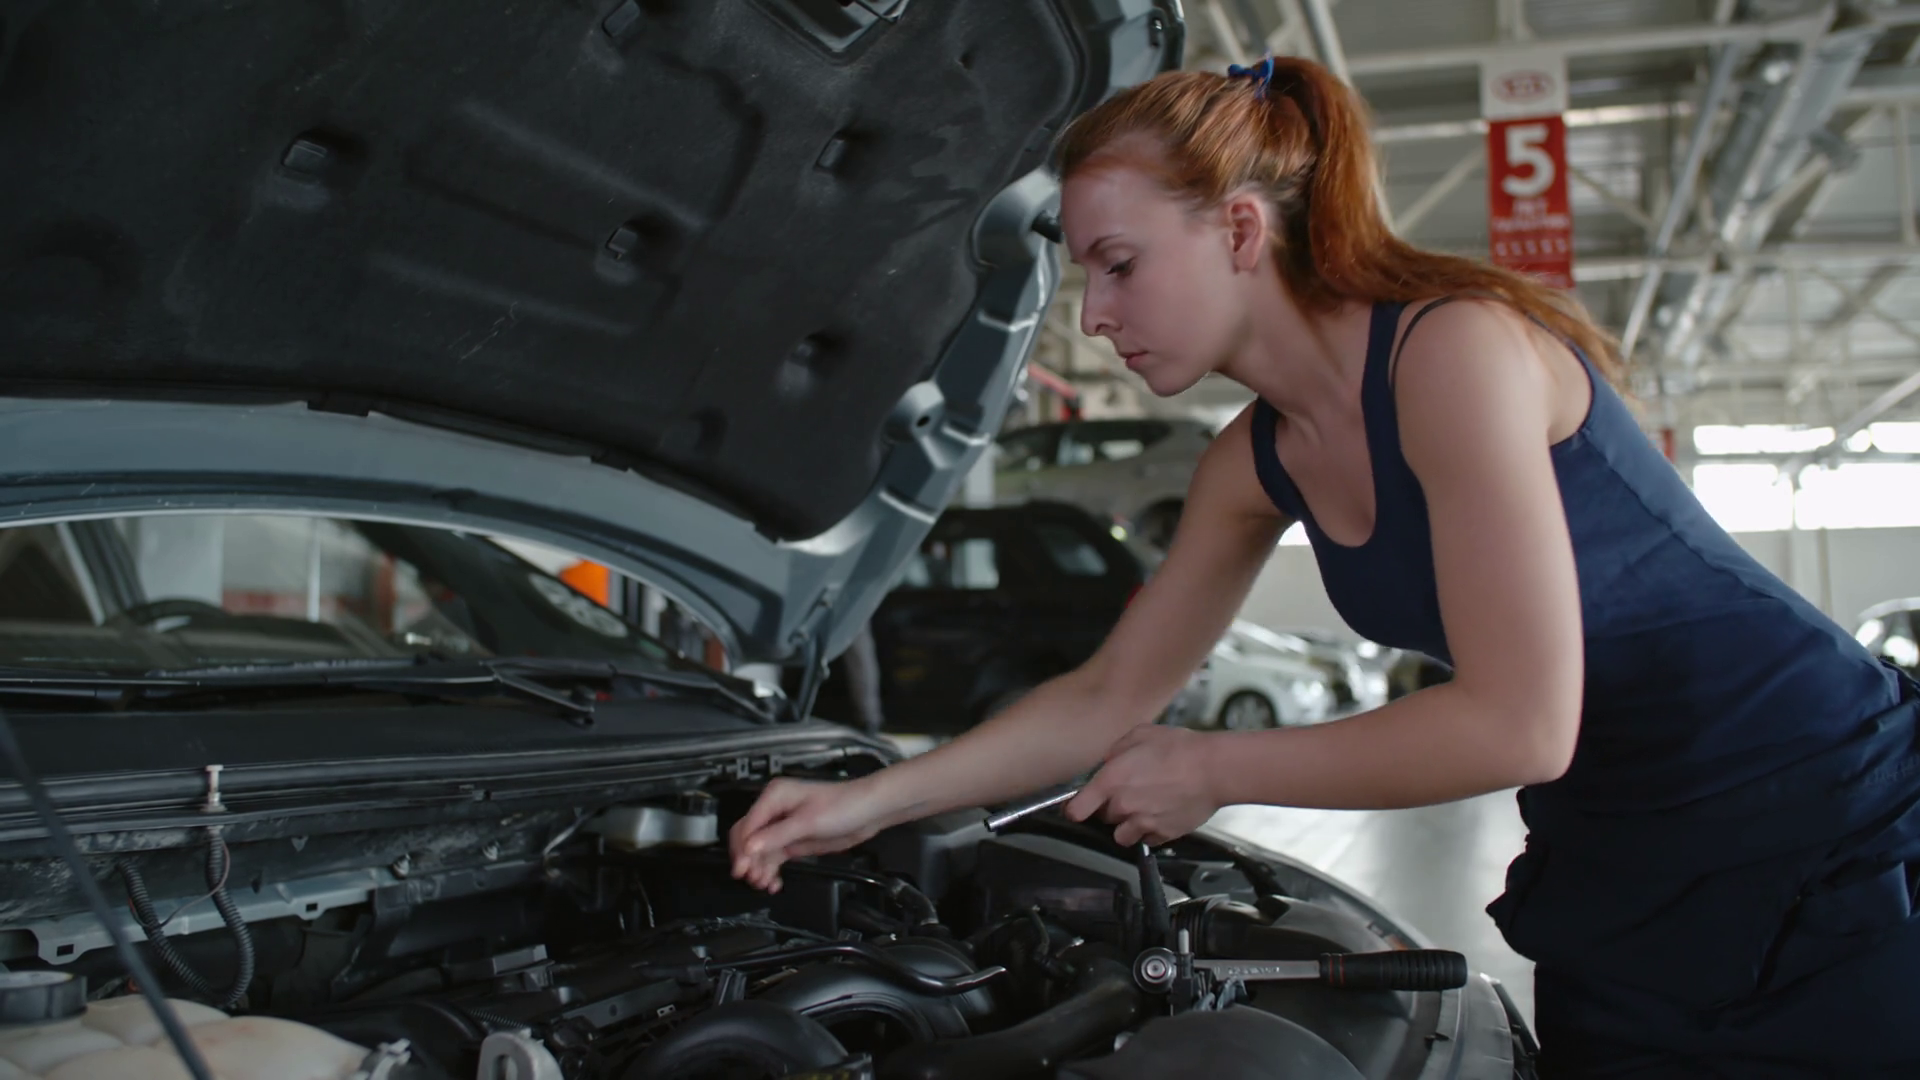 Man and woman in mechanic uniform checking details under car hood ...